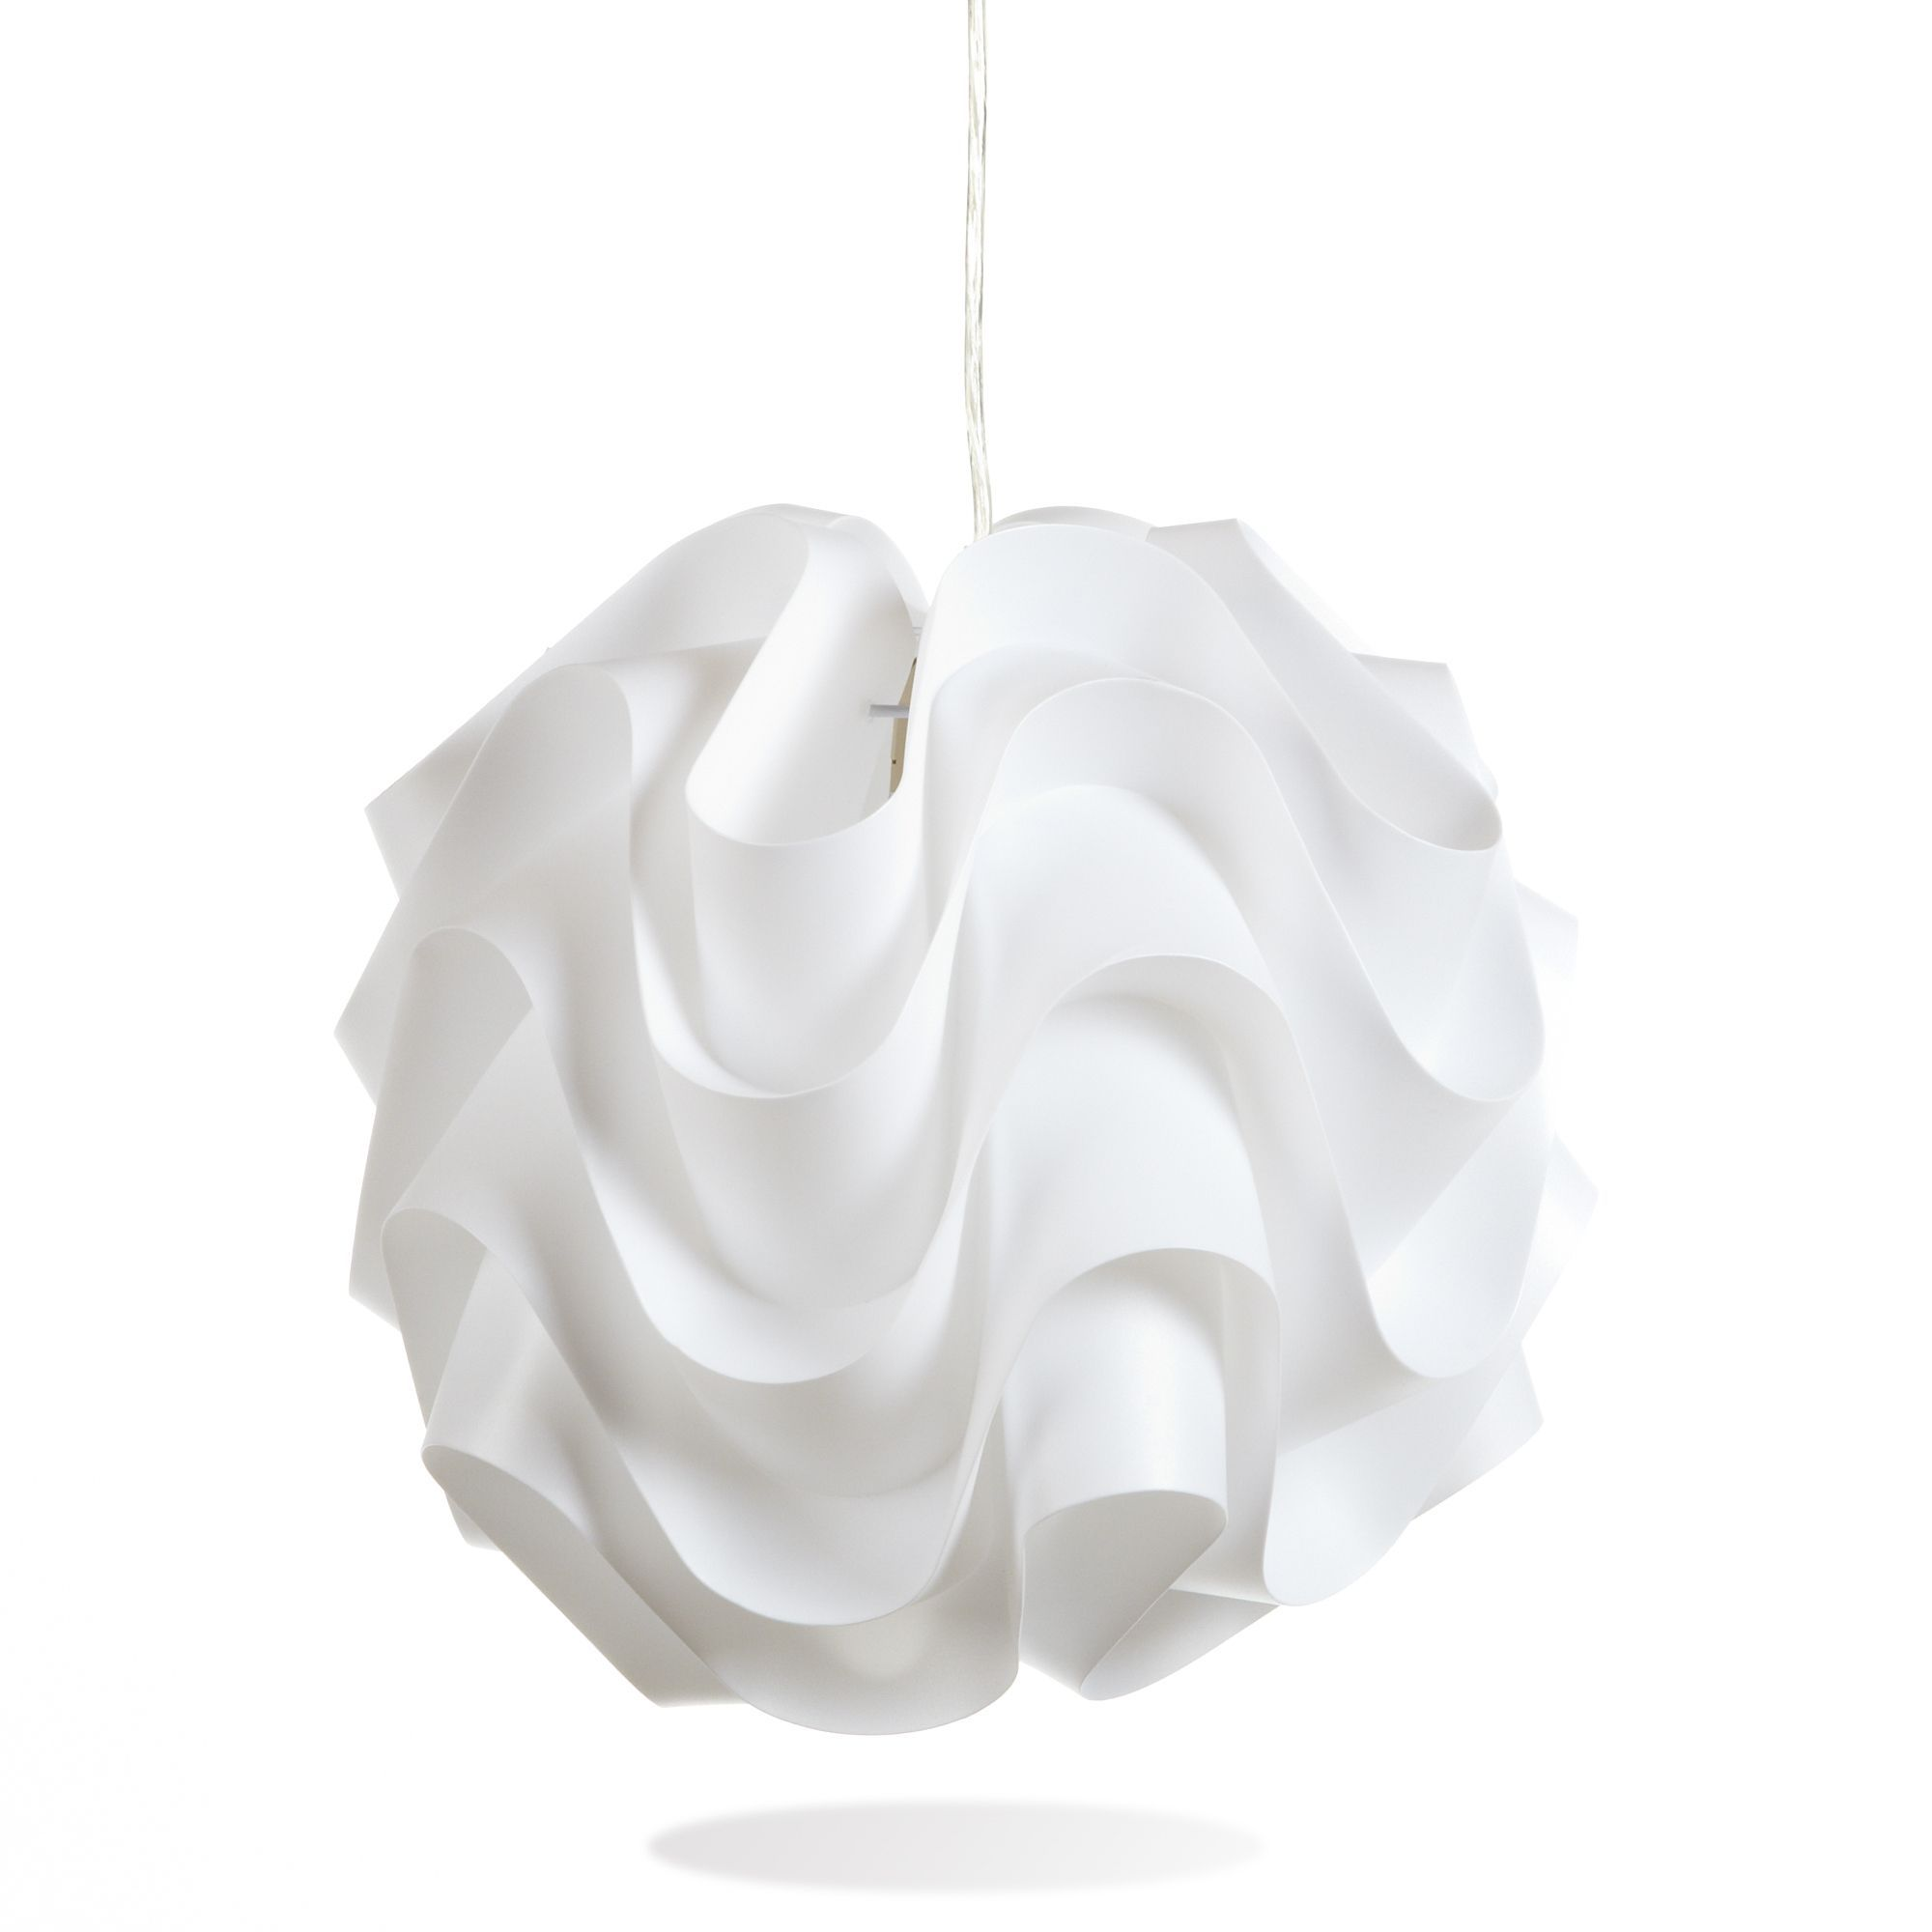 Suspension Luminaire Alinea Happy Light Suspension Blanche Opaque D33cm Luminaire